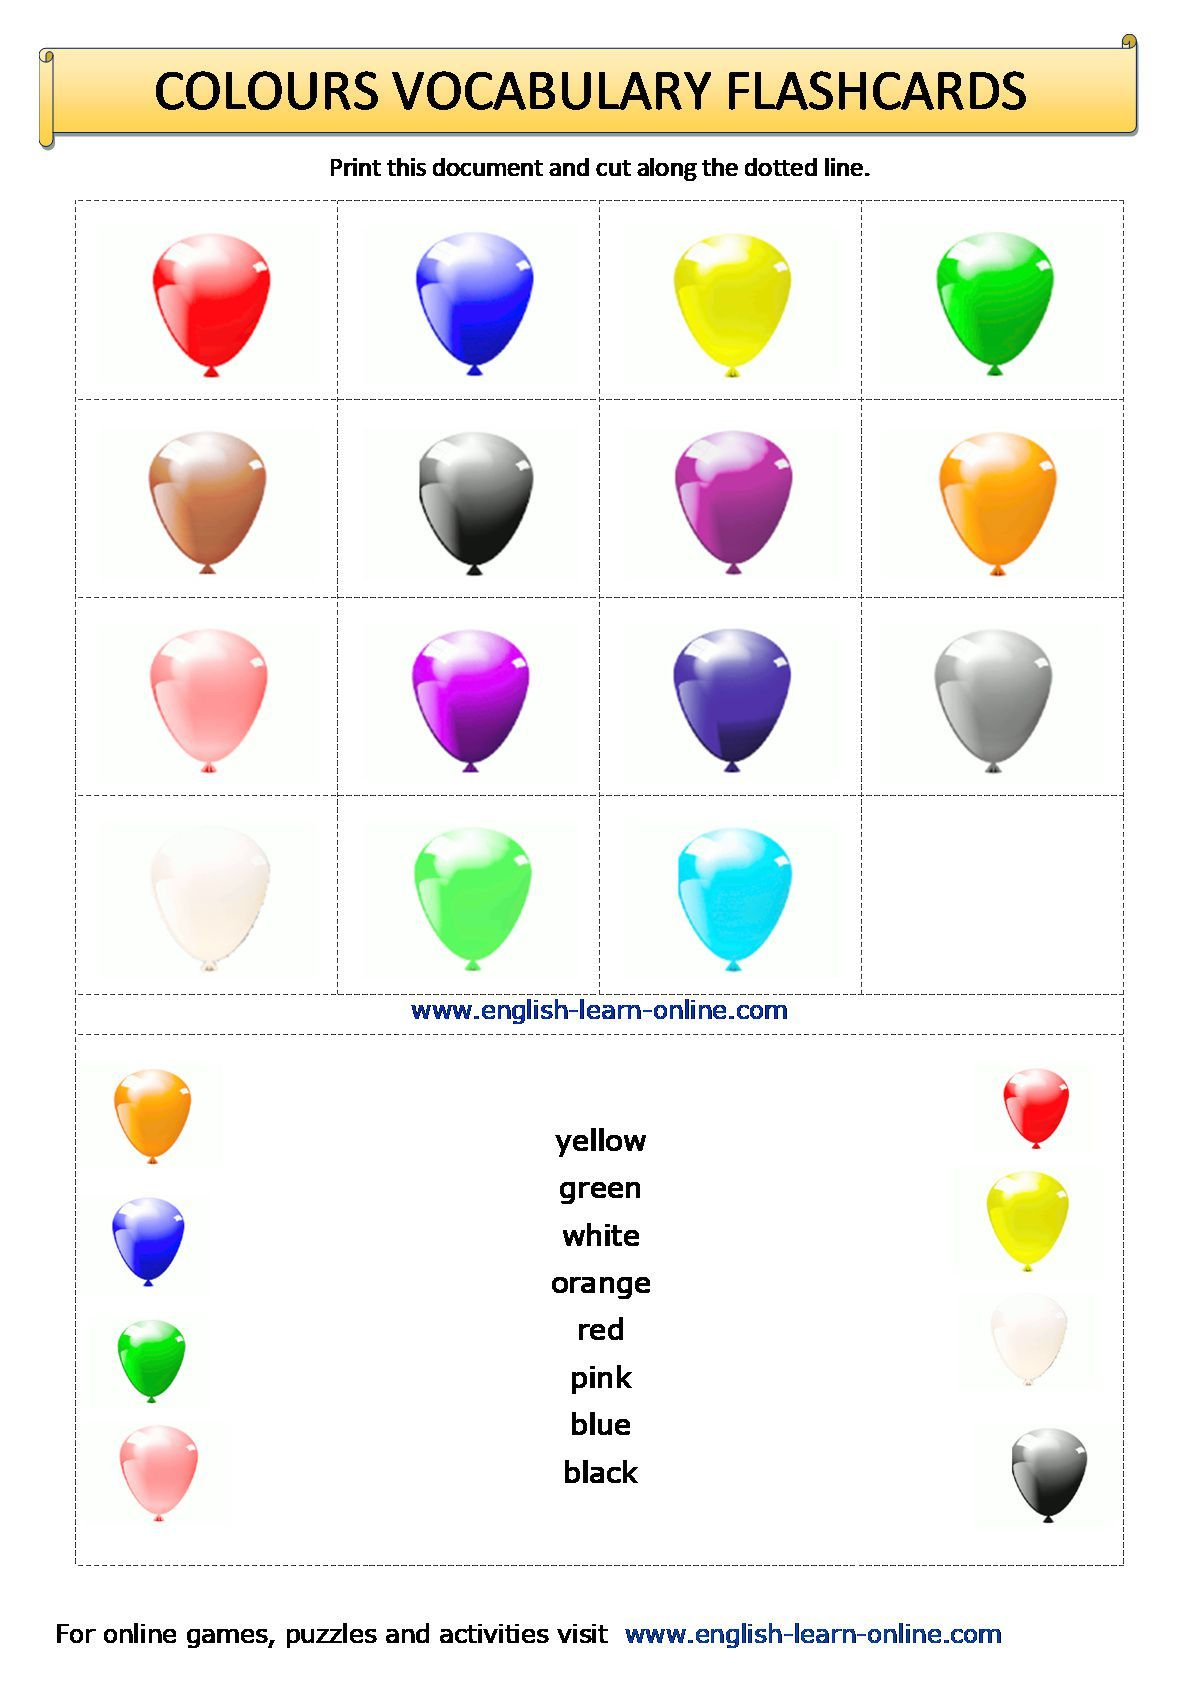 Colours Vocabulary Flashcards Worksheet In